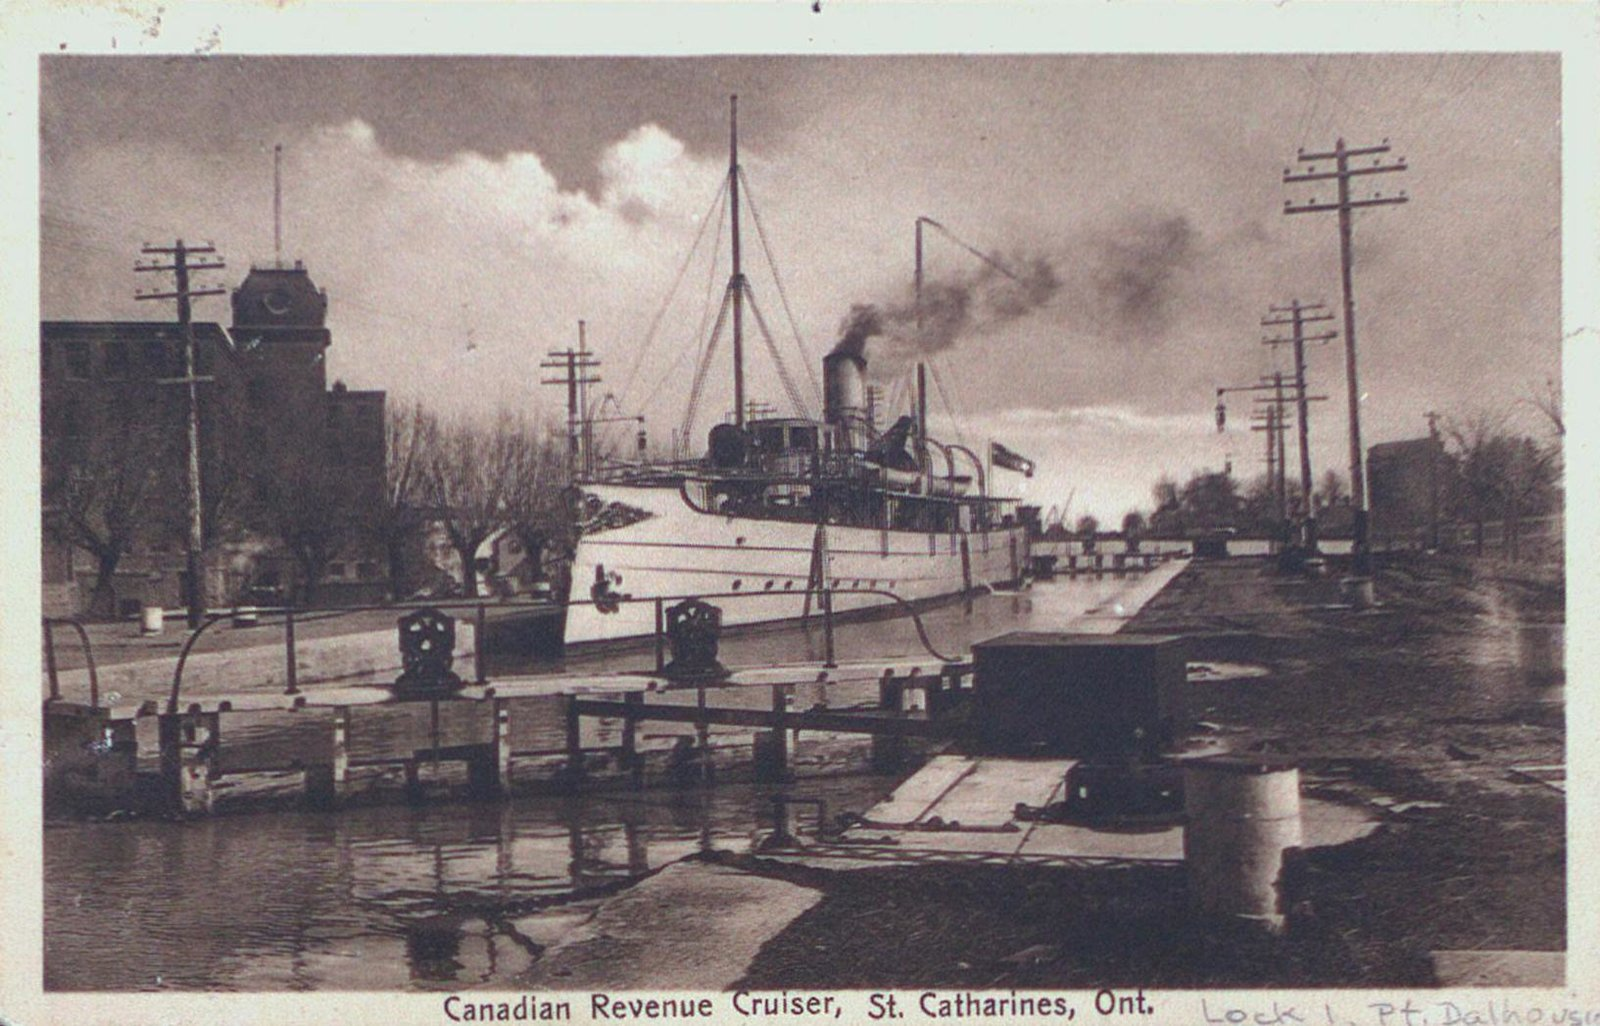 Canadian Revenue Cruiser at Lock 1 of the Third Welland Canal, Port Dalhousie